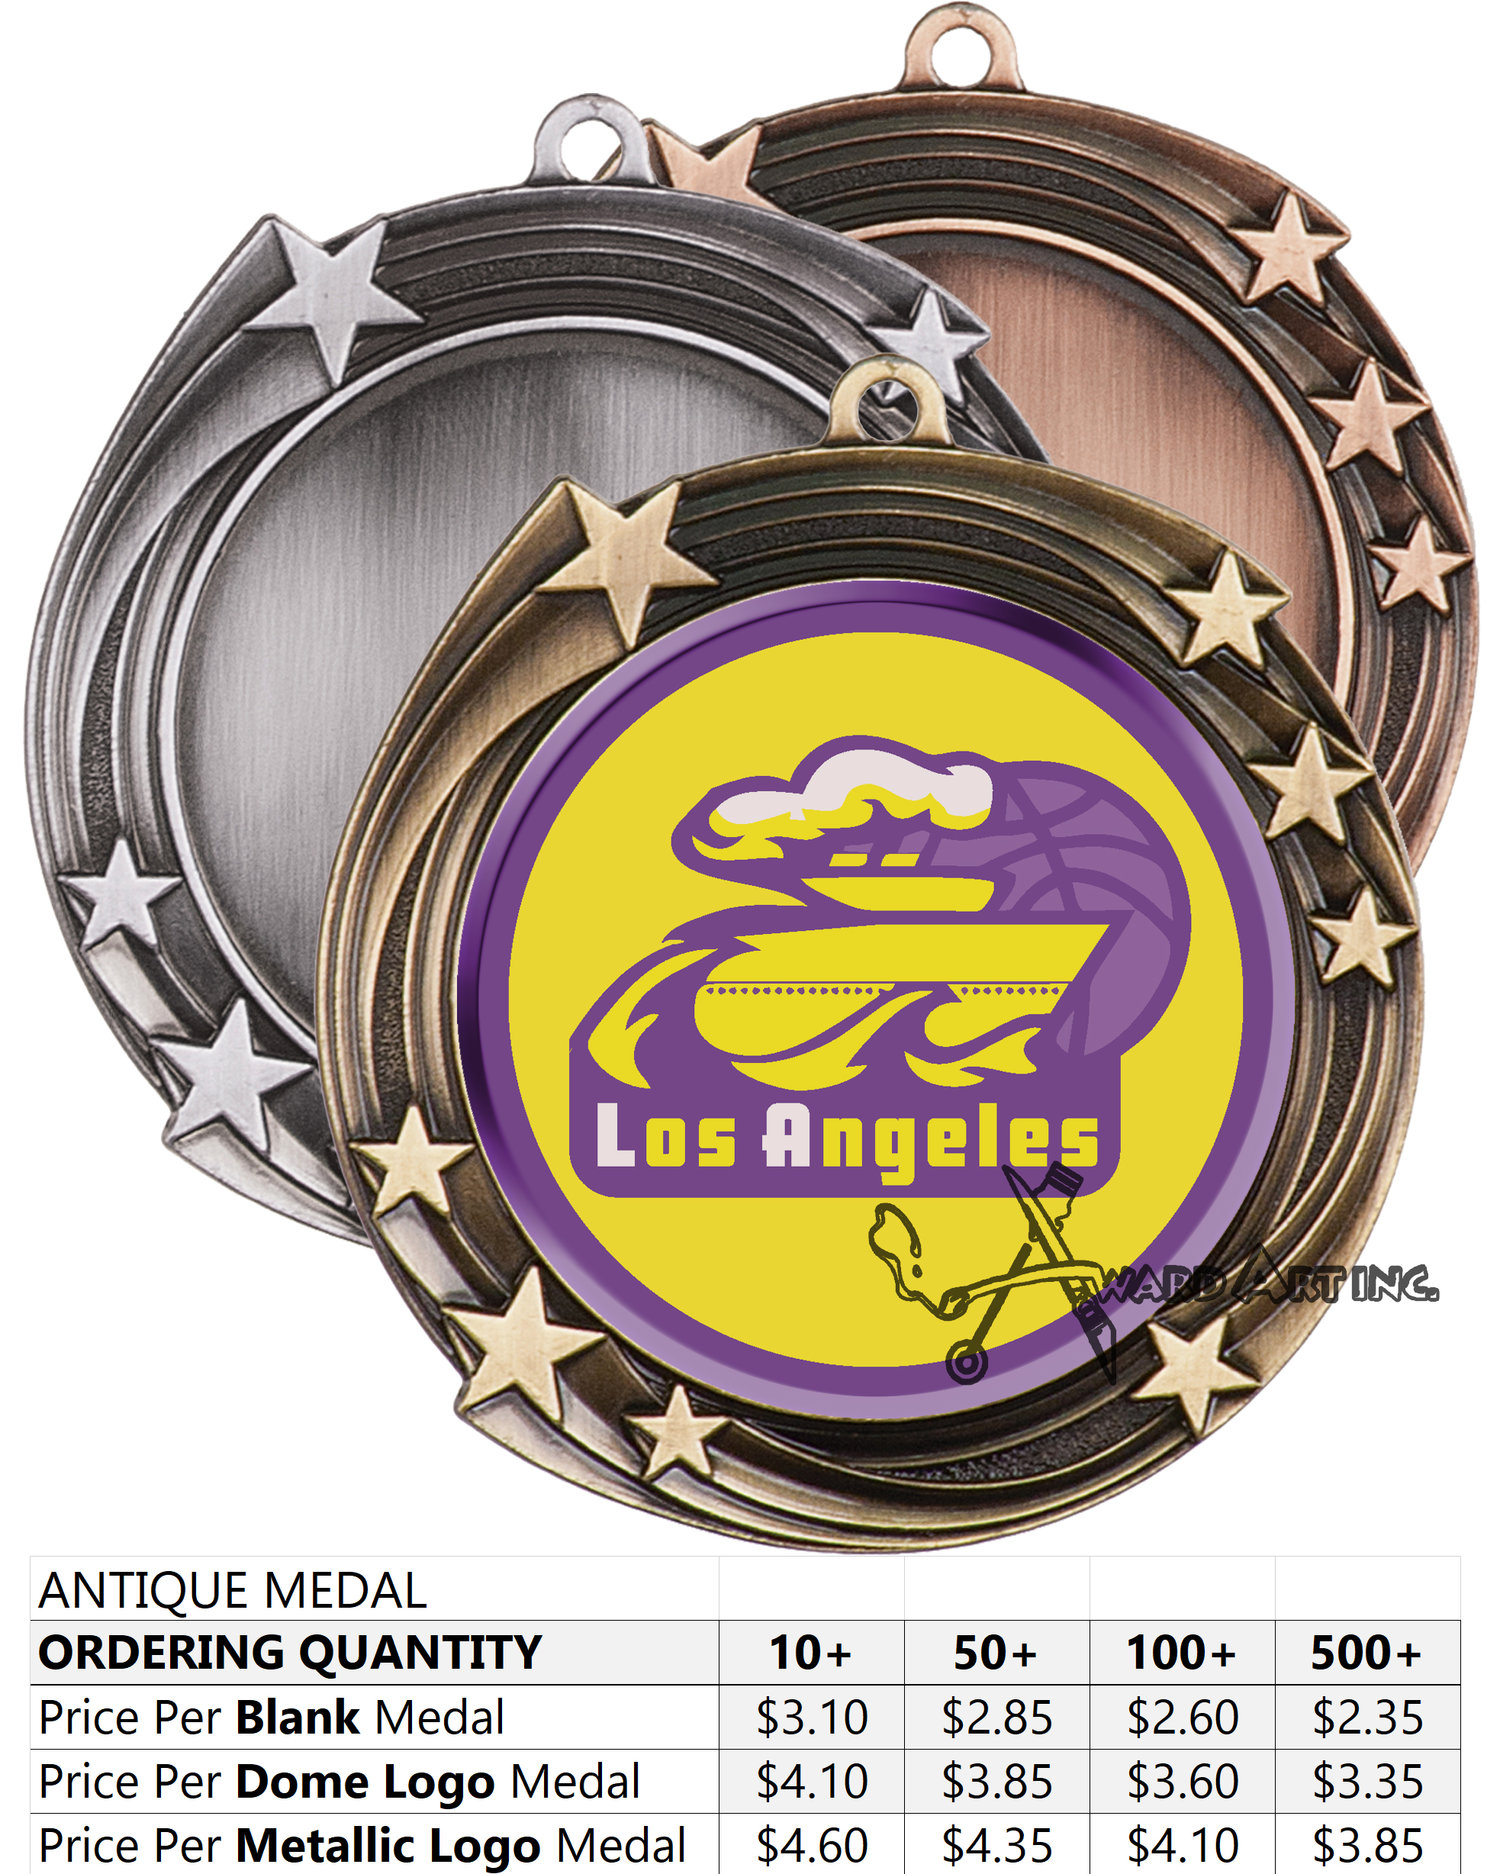 Gold / Silver / Bronze & Antique Medallions — AWARD ART INC